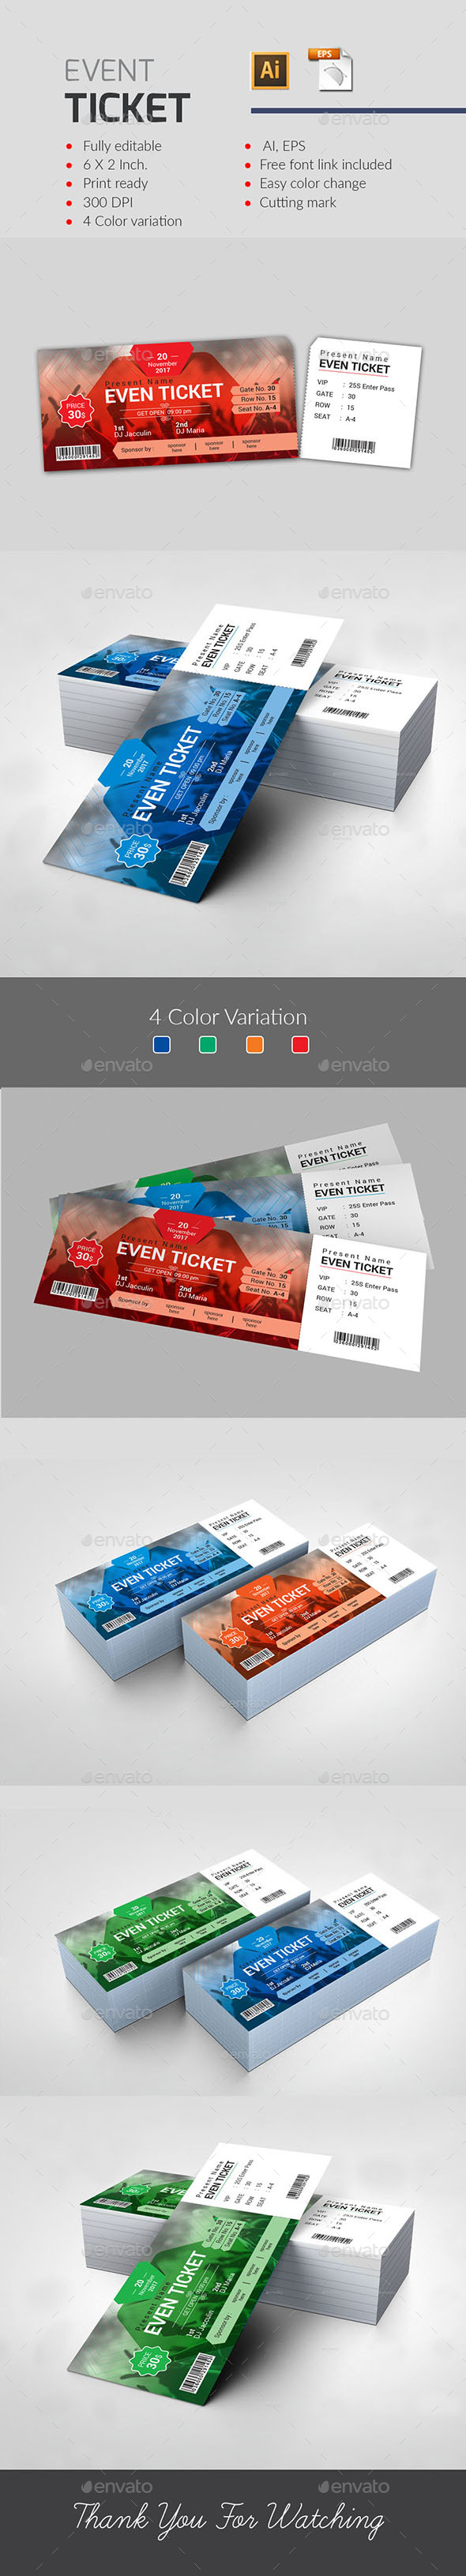 Event Ticket - Events Flyers